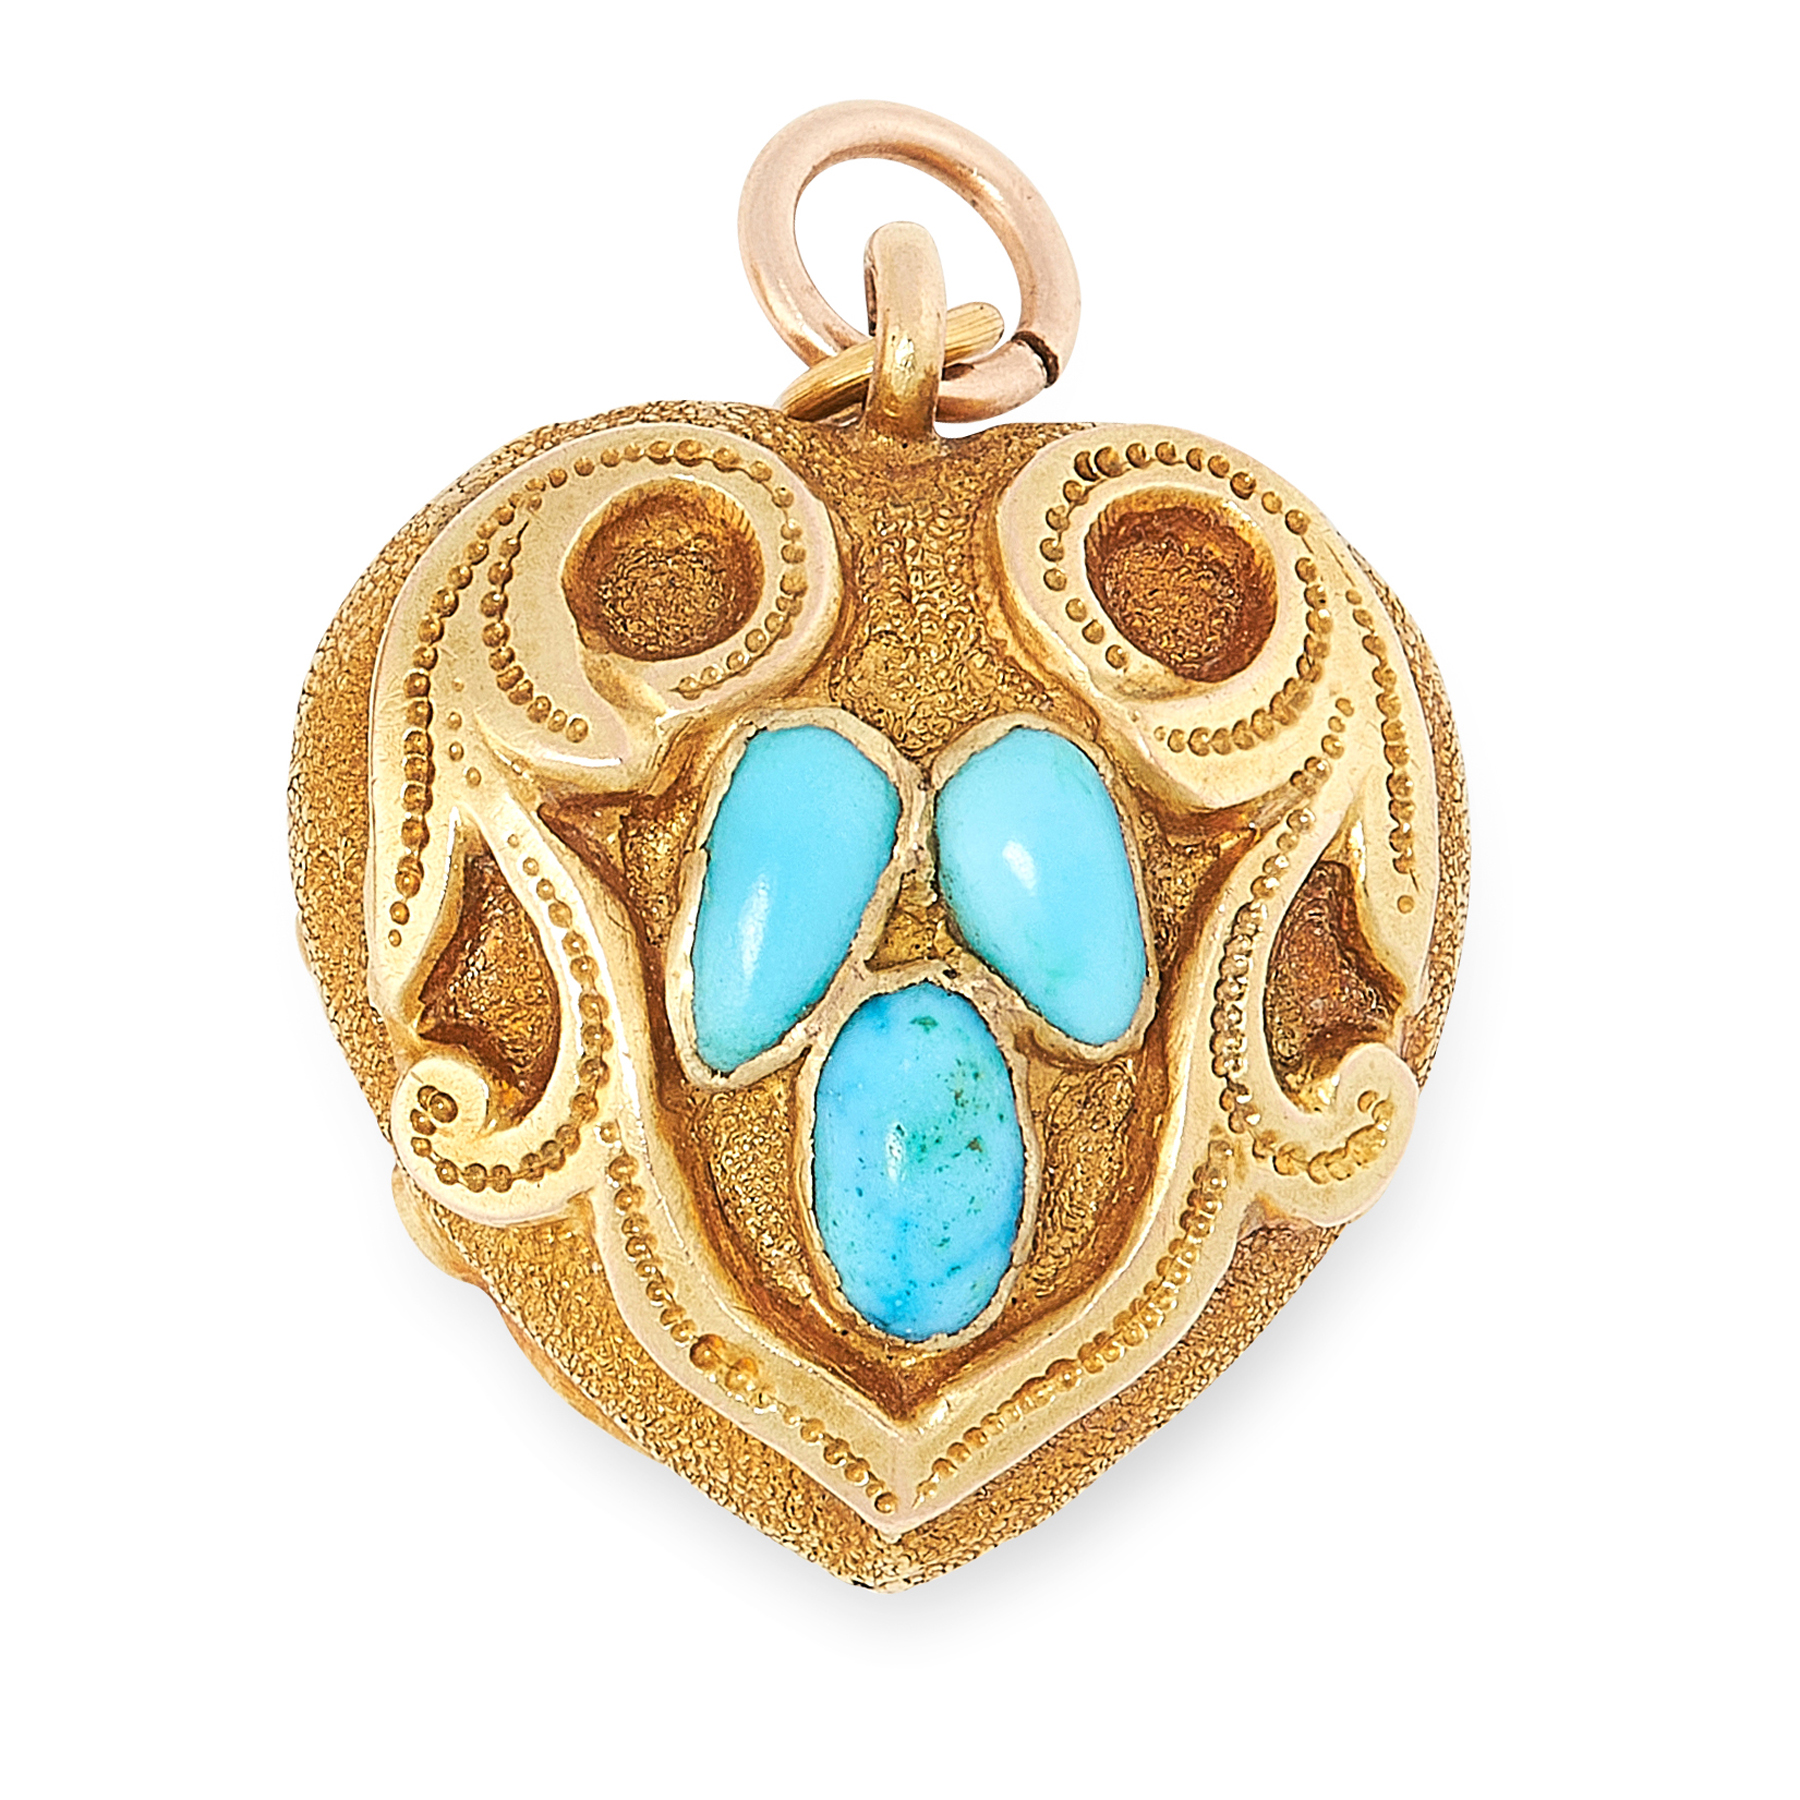 AN ANTIQUE TURQUOISE MOURNING LOCKET PENDNAT in high carat yellow gold, designed as a heart with